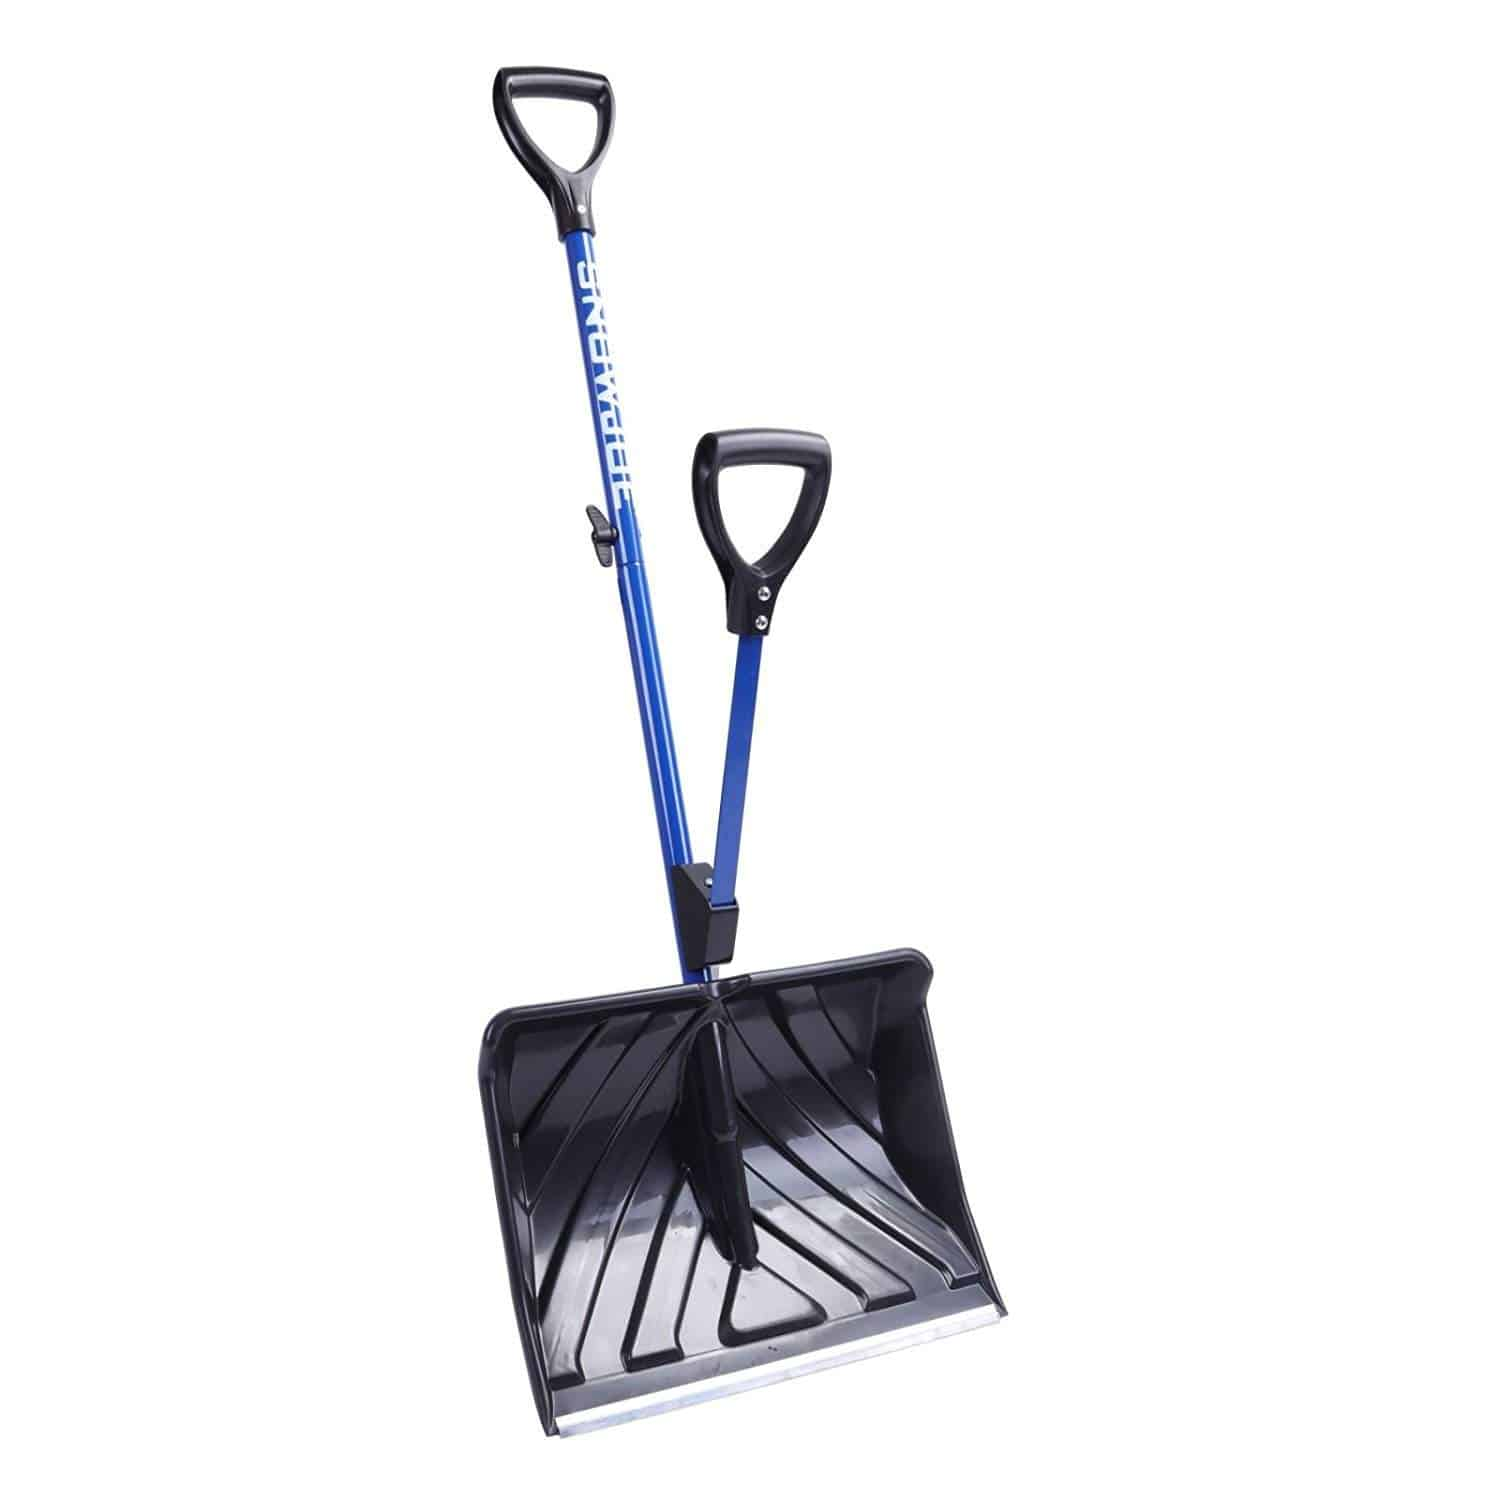 best snow shovel for avoiding back pain